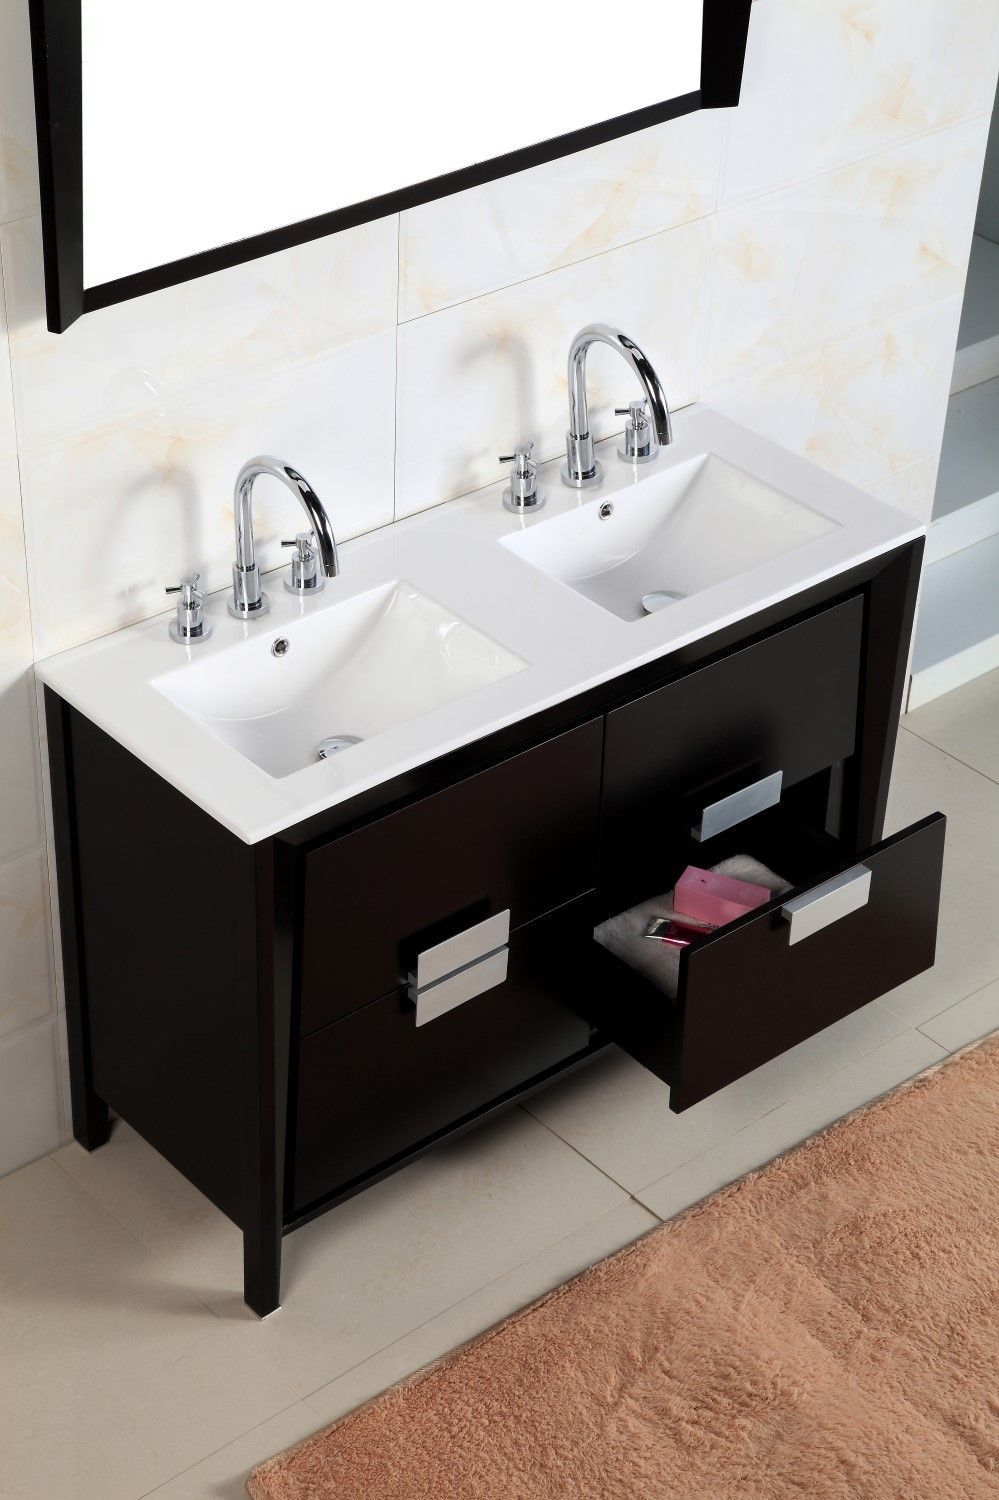 Water Proof Wood Finish Protects Against Bathroom Humidity Compact Size With Dual Sinks For Small S